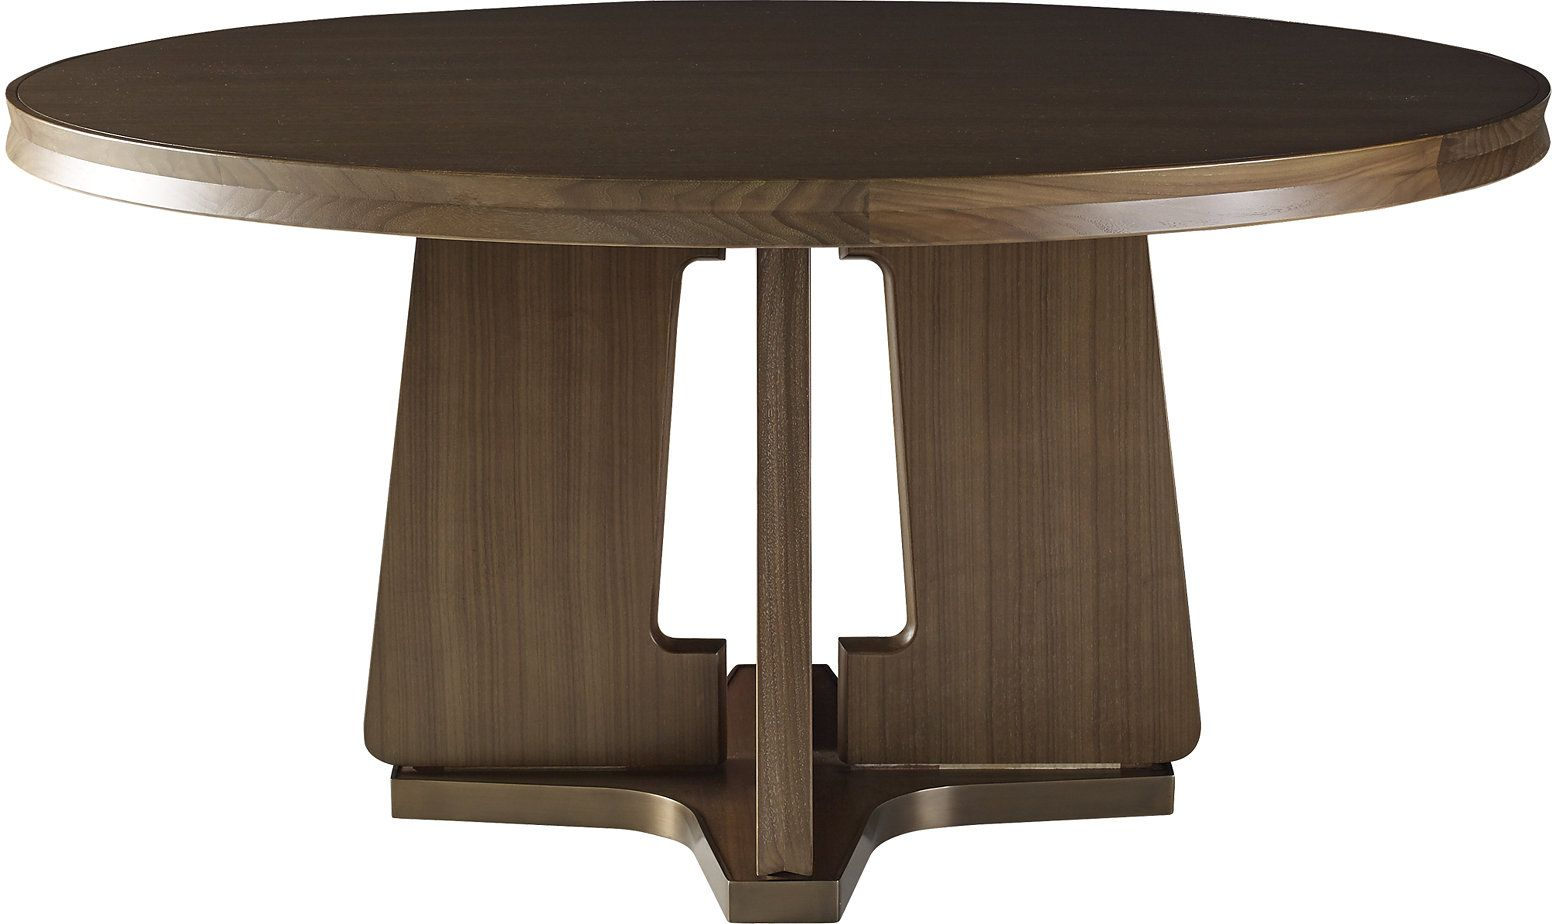 Ceremony Circle Dining By Barbara Barry 3338 Baker Furniture